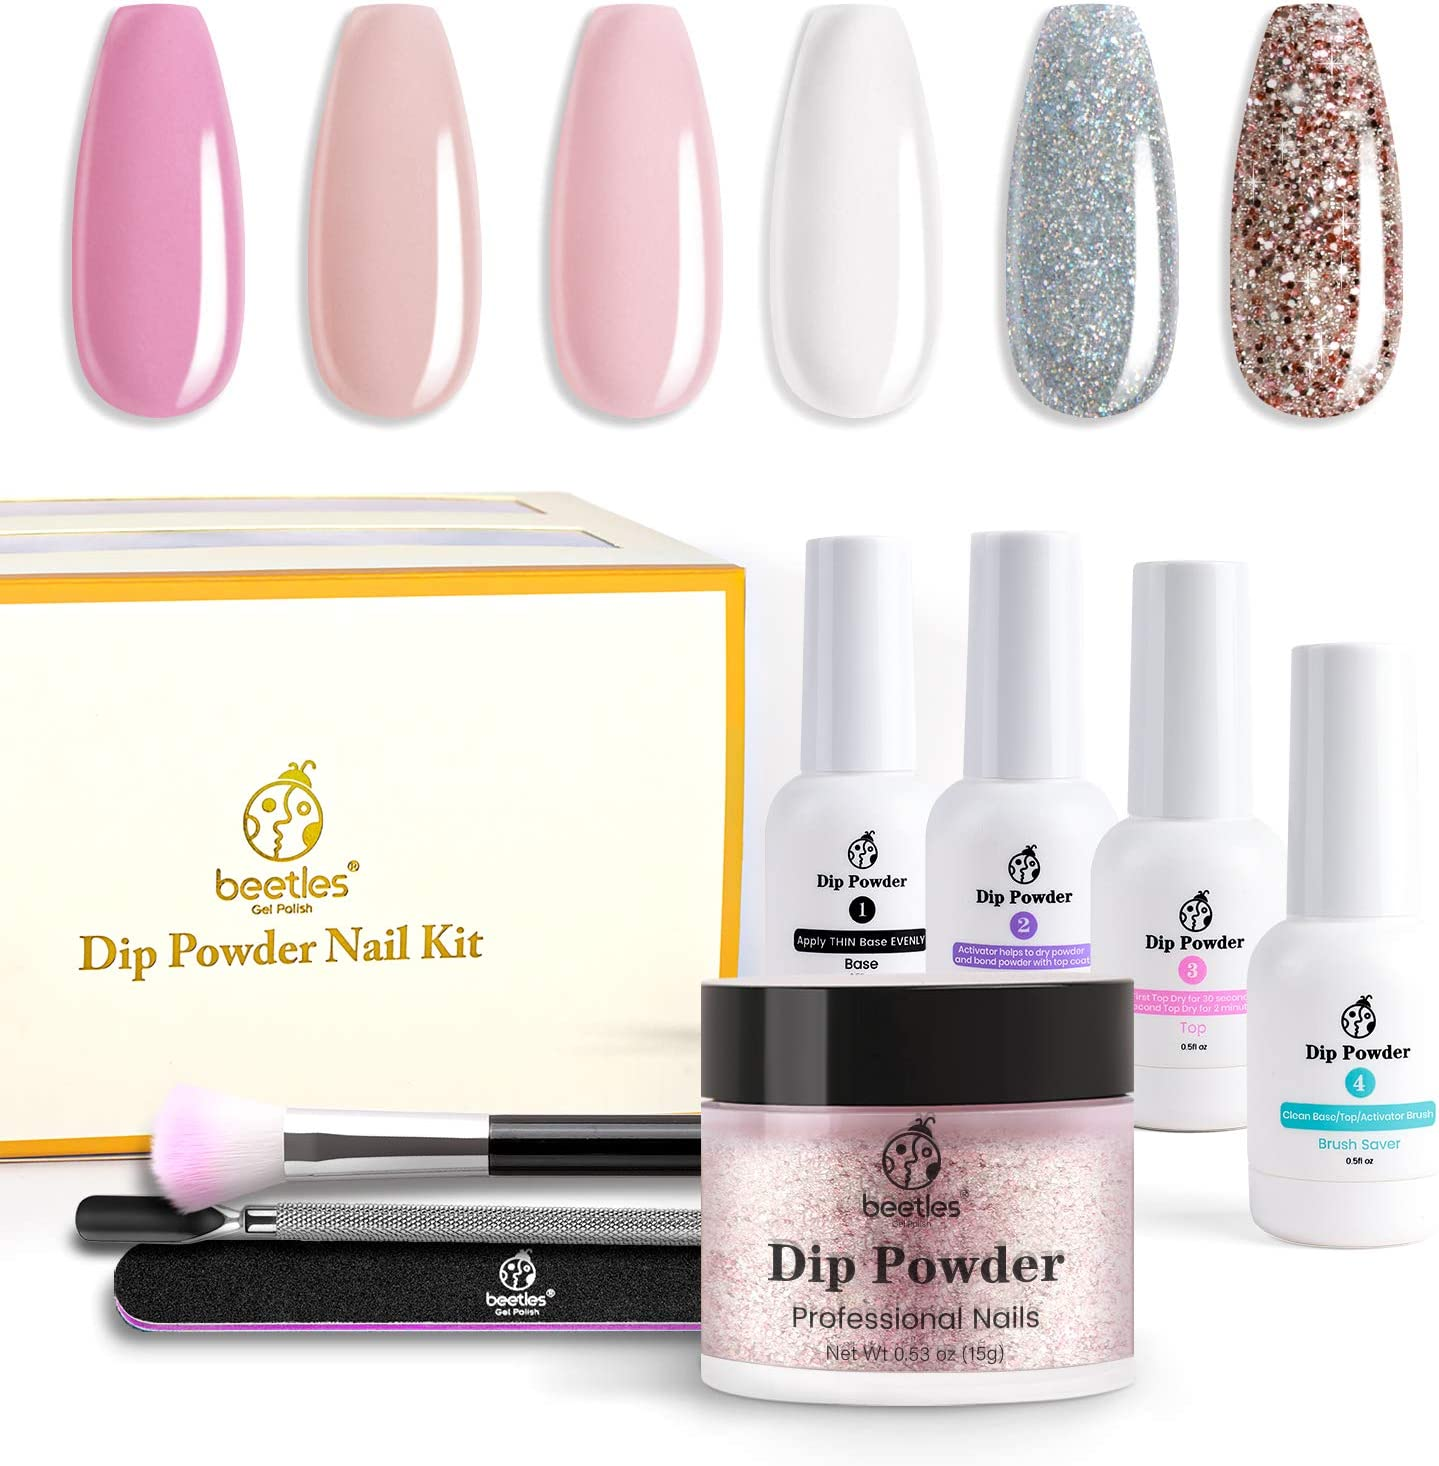 Beetles Dip Powder Nail Starter Kit 6 Colors French Tips Kit, Acrylic Dipping Powder System Starter Nail Kit for French Nail Manicure Nail Art Set Essential Kit, No UV/LED Lamp Needed, 0.53 fl.Oz/each